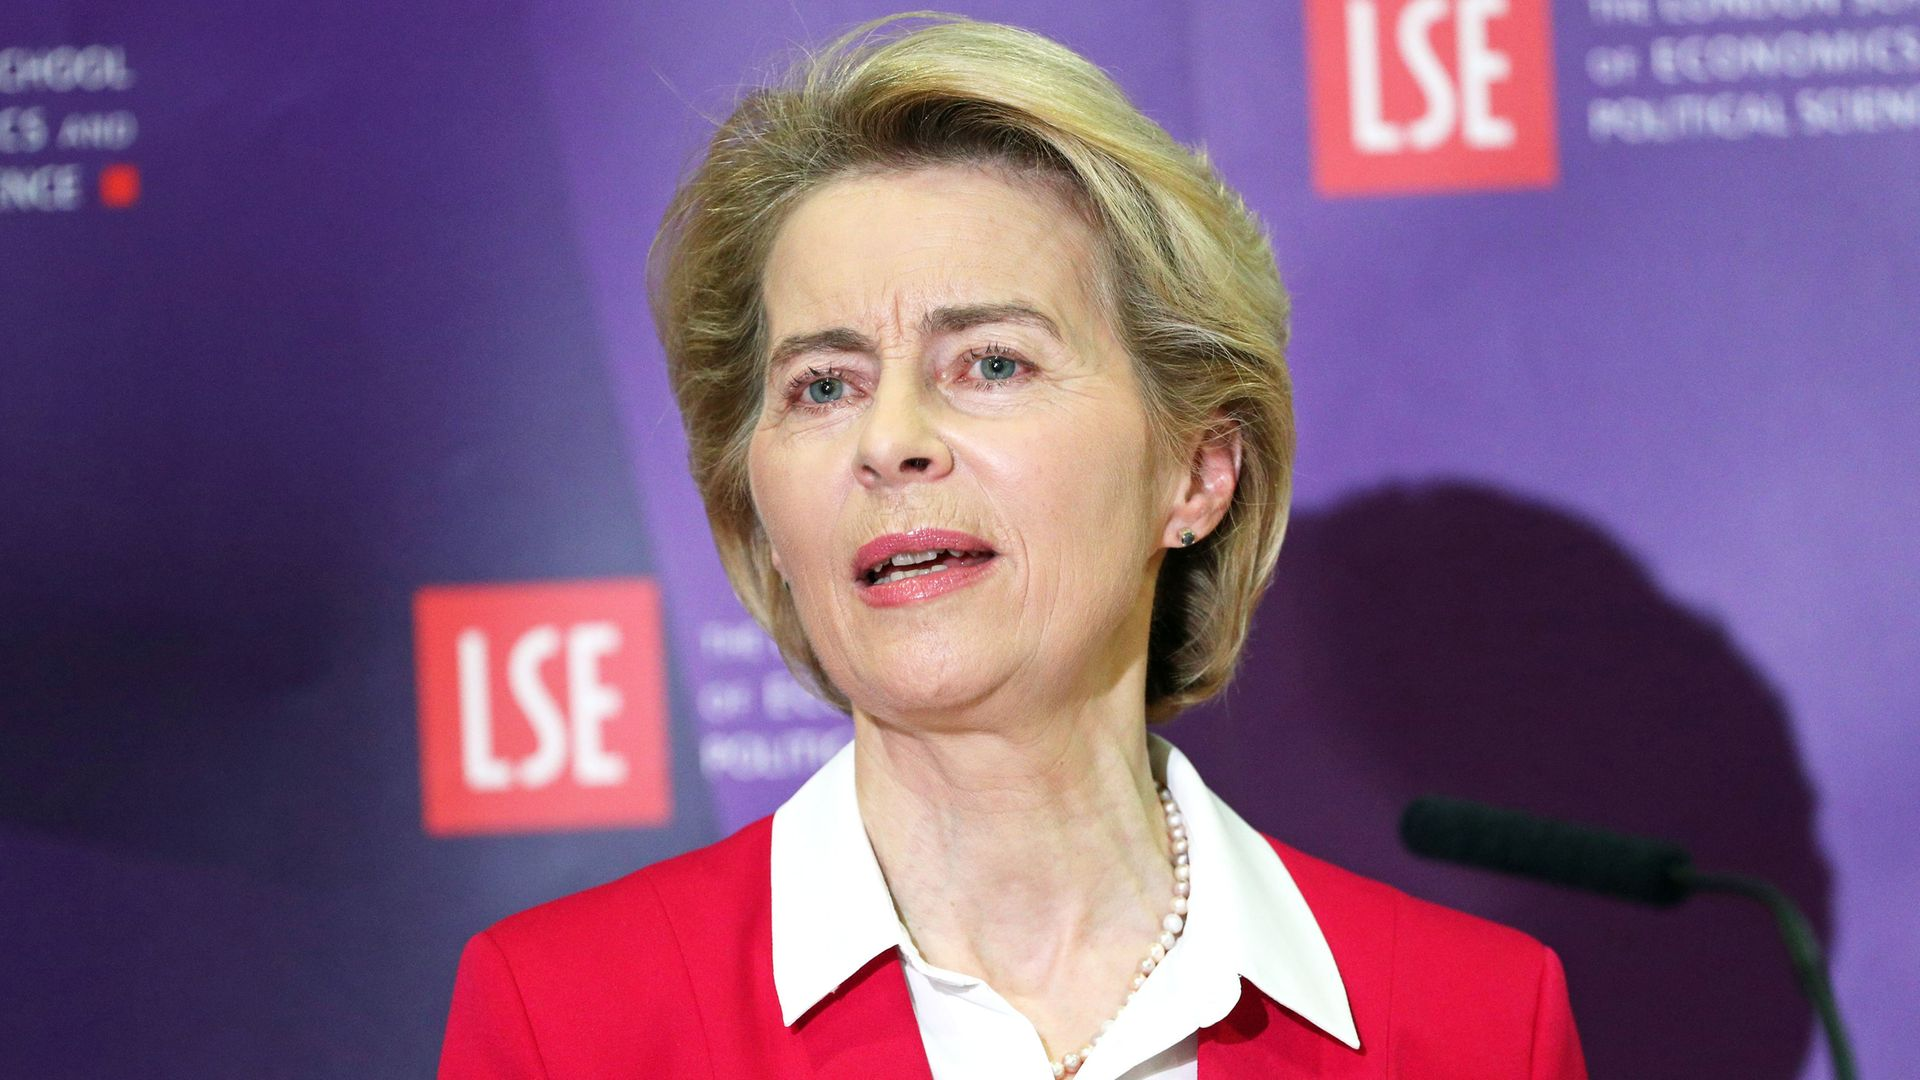 EU Commission President Ursula von der Leyen making a speech at the London School of Economics in Holborn, central London. - Credit: PA Archive/PA Images